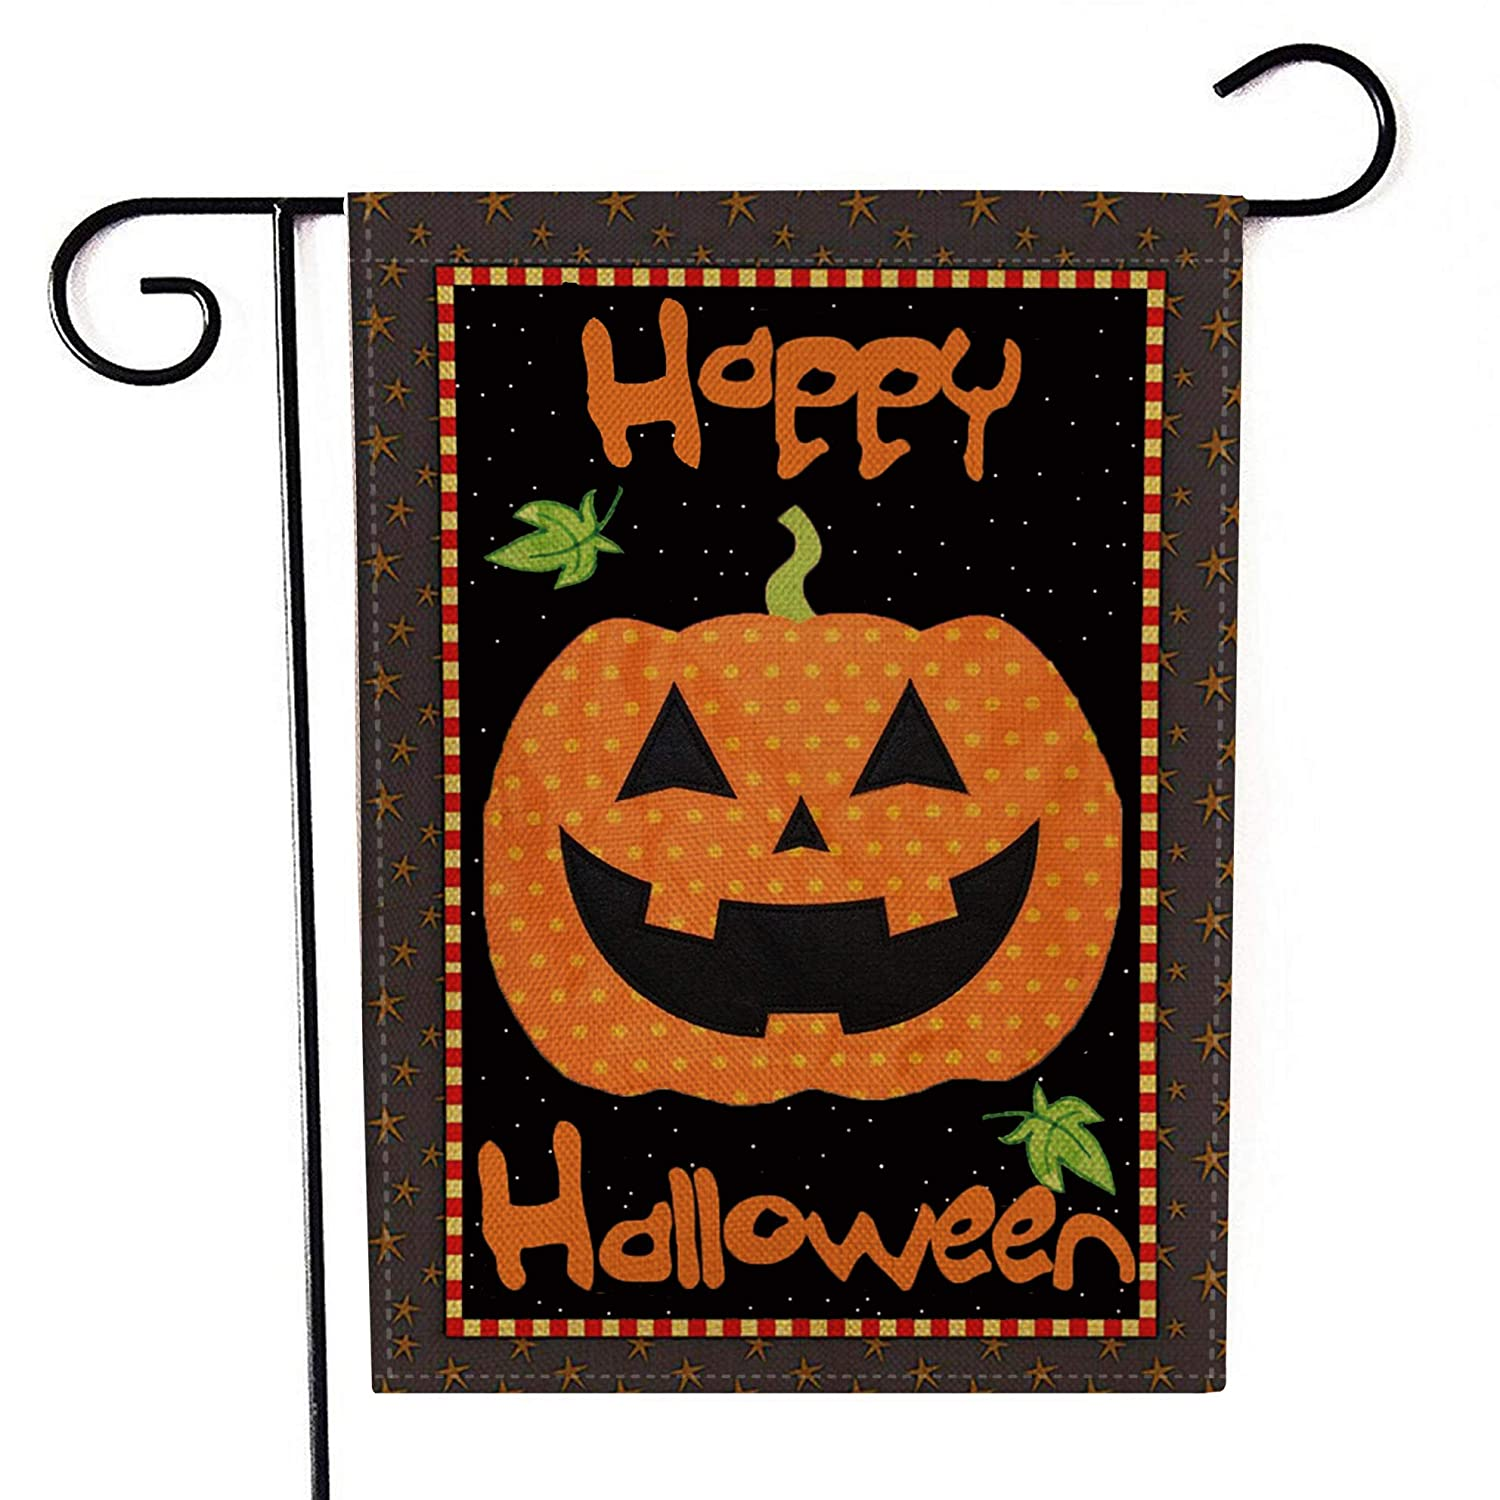 MeritChoice Halloween Garden Flag Pumpkin Home Decorative Double Sided Halloween Outdoor Flag 12 x 18 Inch